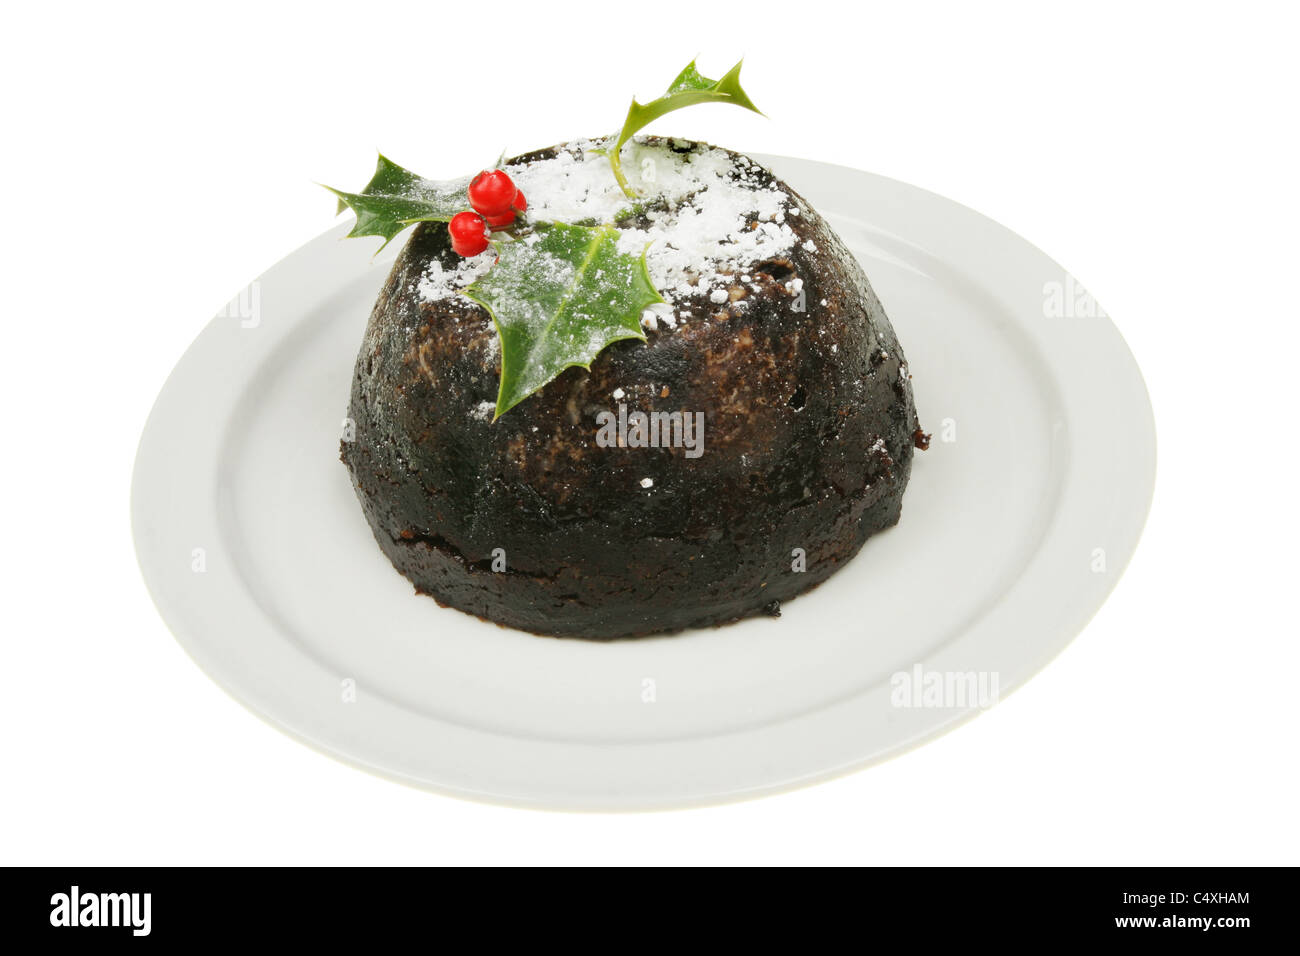 Decorated Christmas pudding on a plate - Stock Image